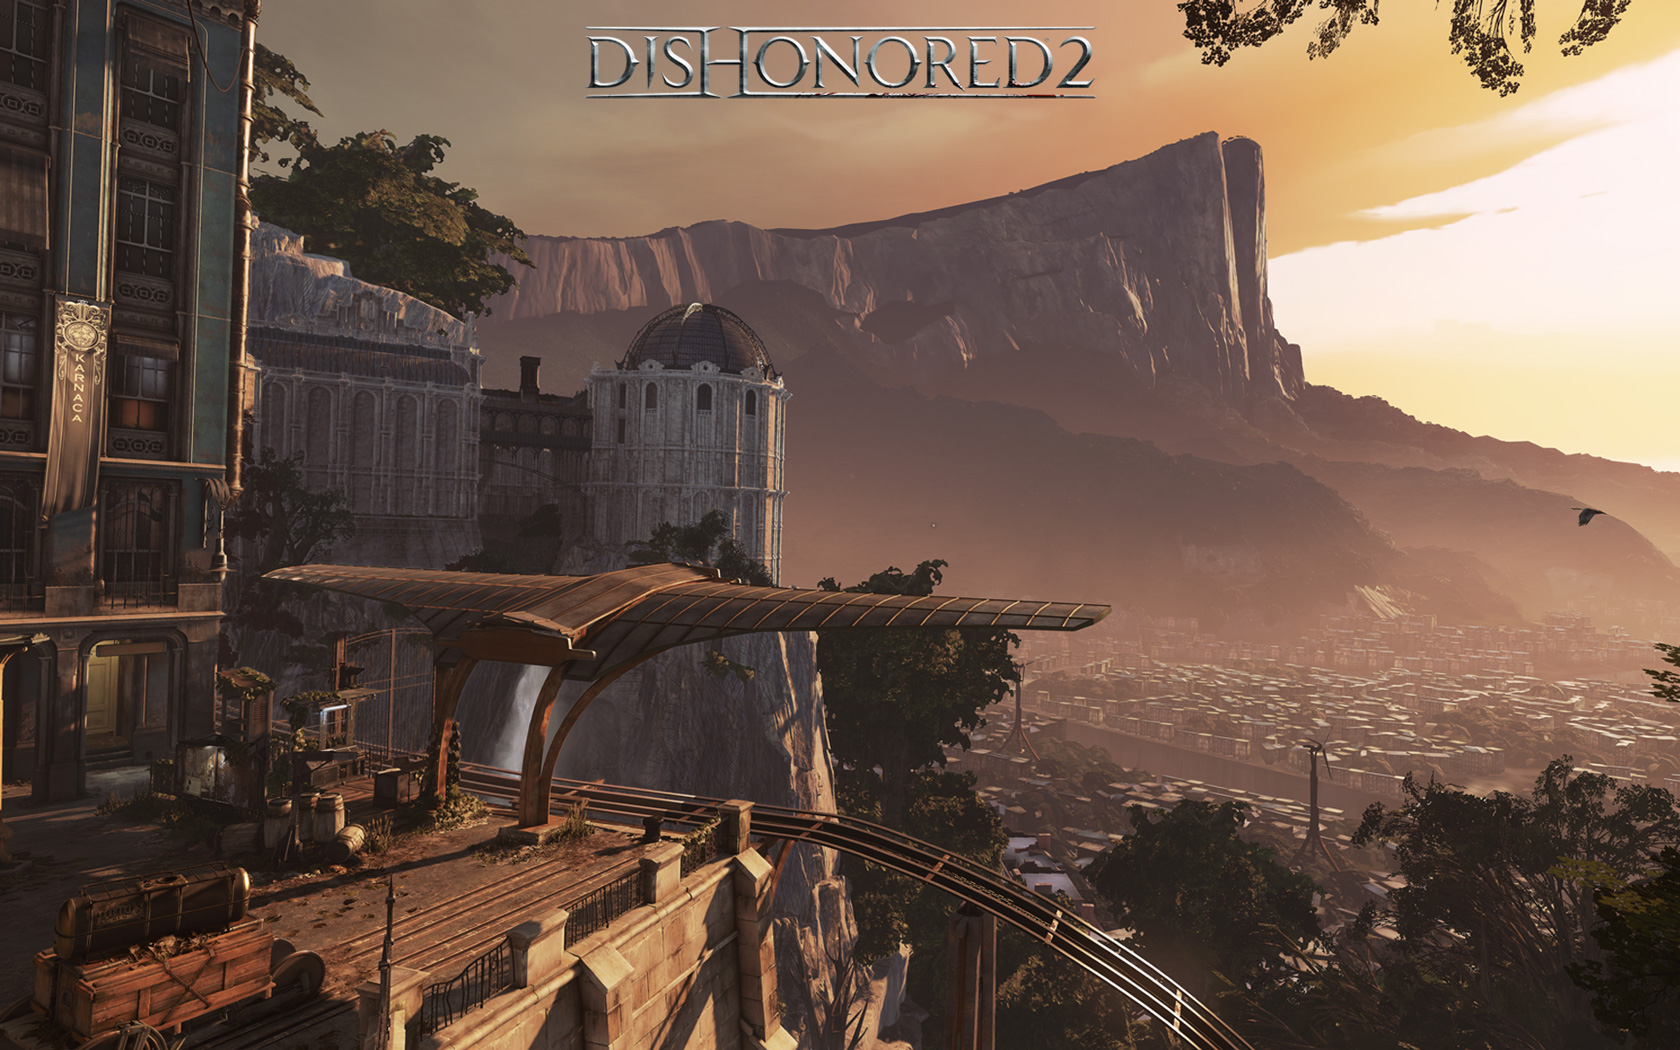 Free Dishonored 2 Wallpaper in 1680x1050